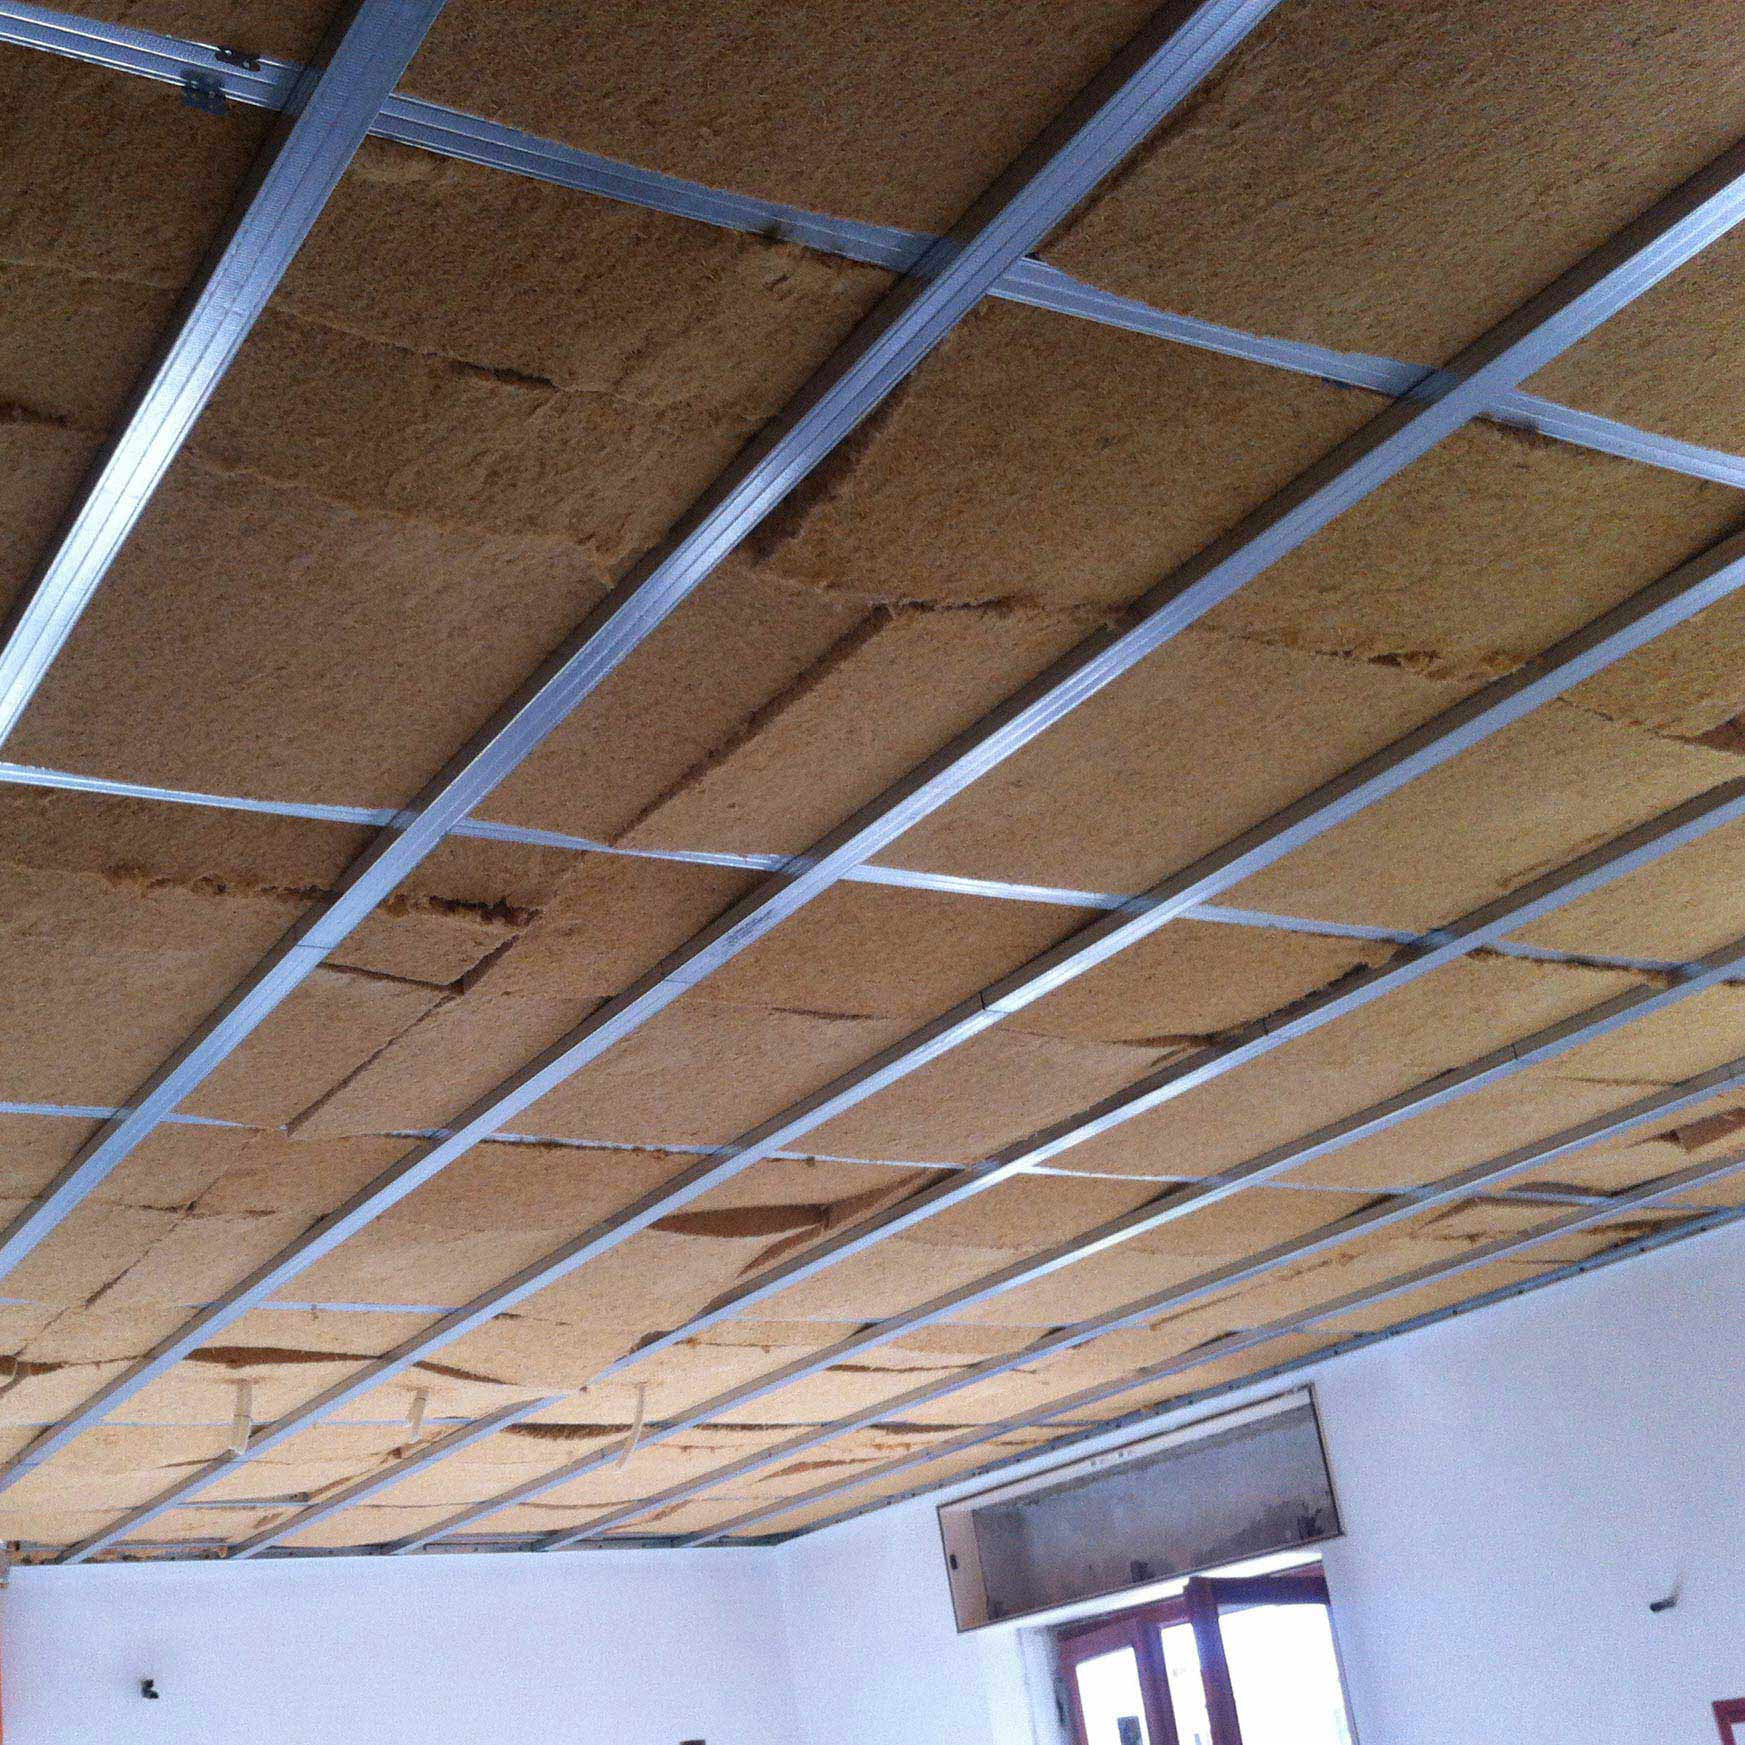 Flexible Fiber Wood FiberTherm Flex density 50kg/mc ceiling insulation